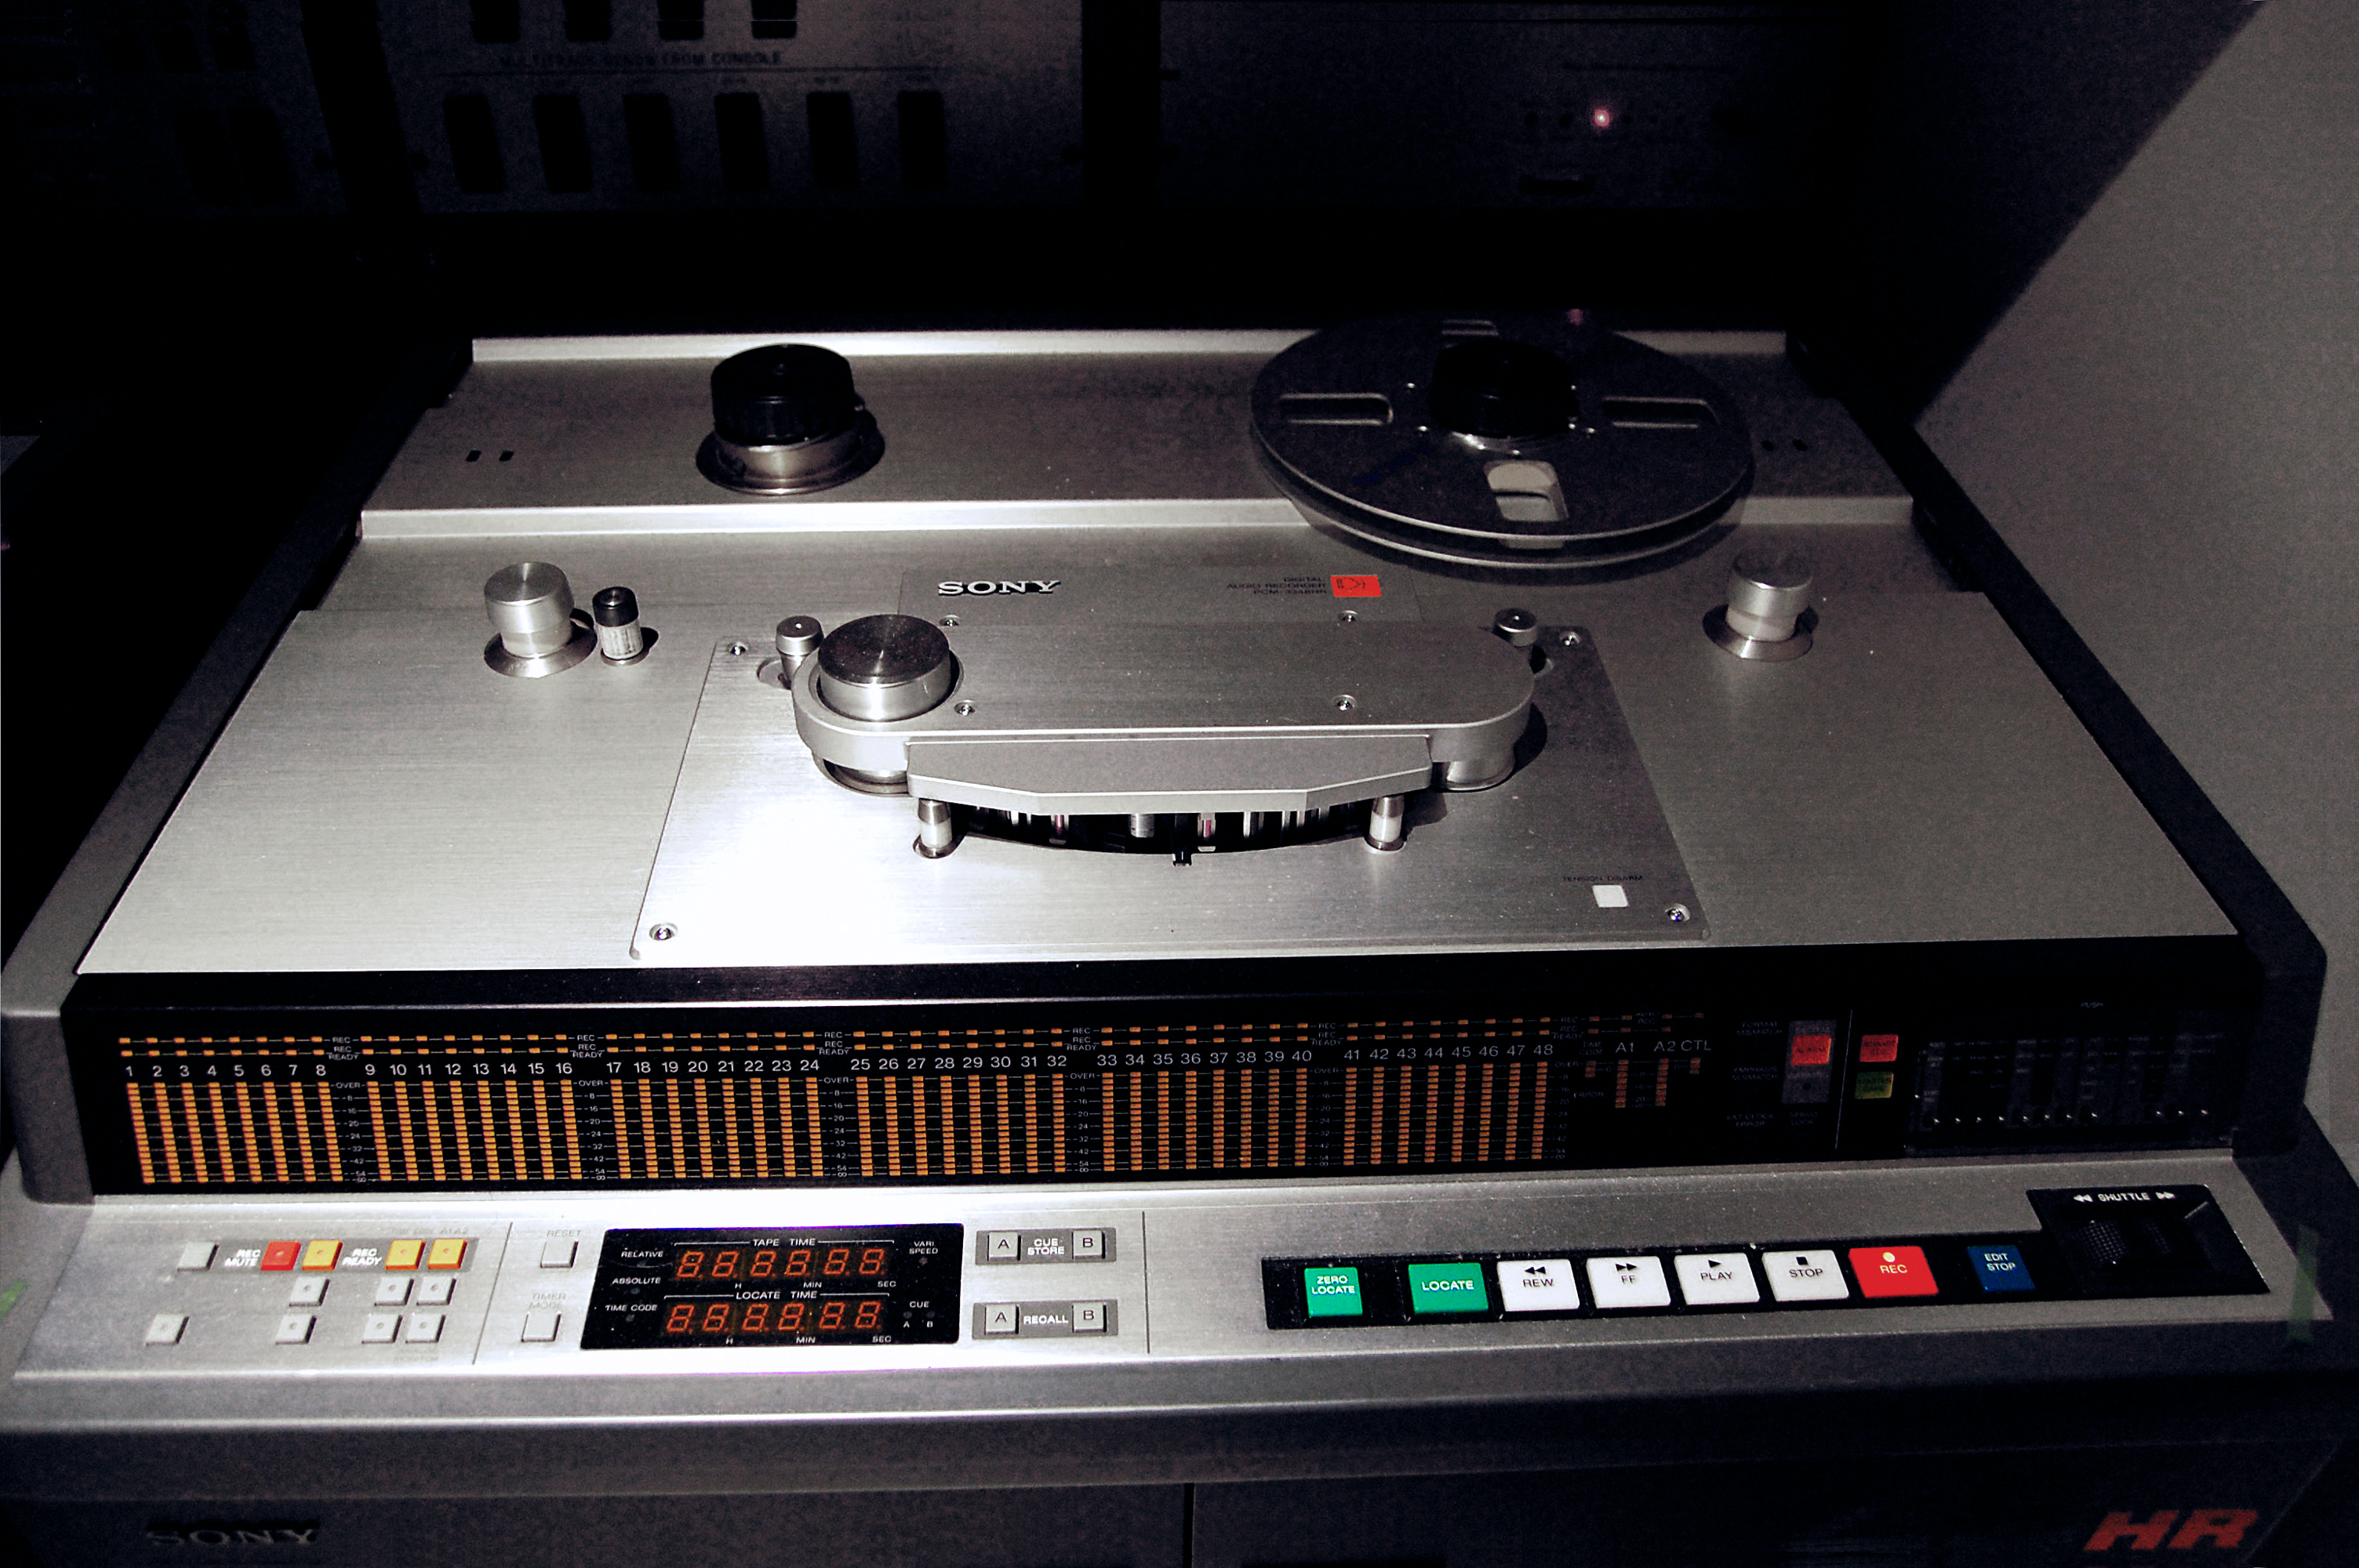 This image is a derivative work of the following image(s): File:Sony PCM-3348HR Digital Audio Multitrack Recorder, Avex Honolulu Studios.jpg licensed